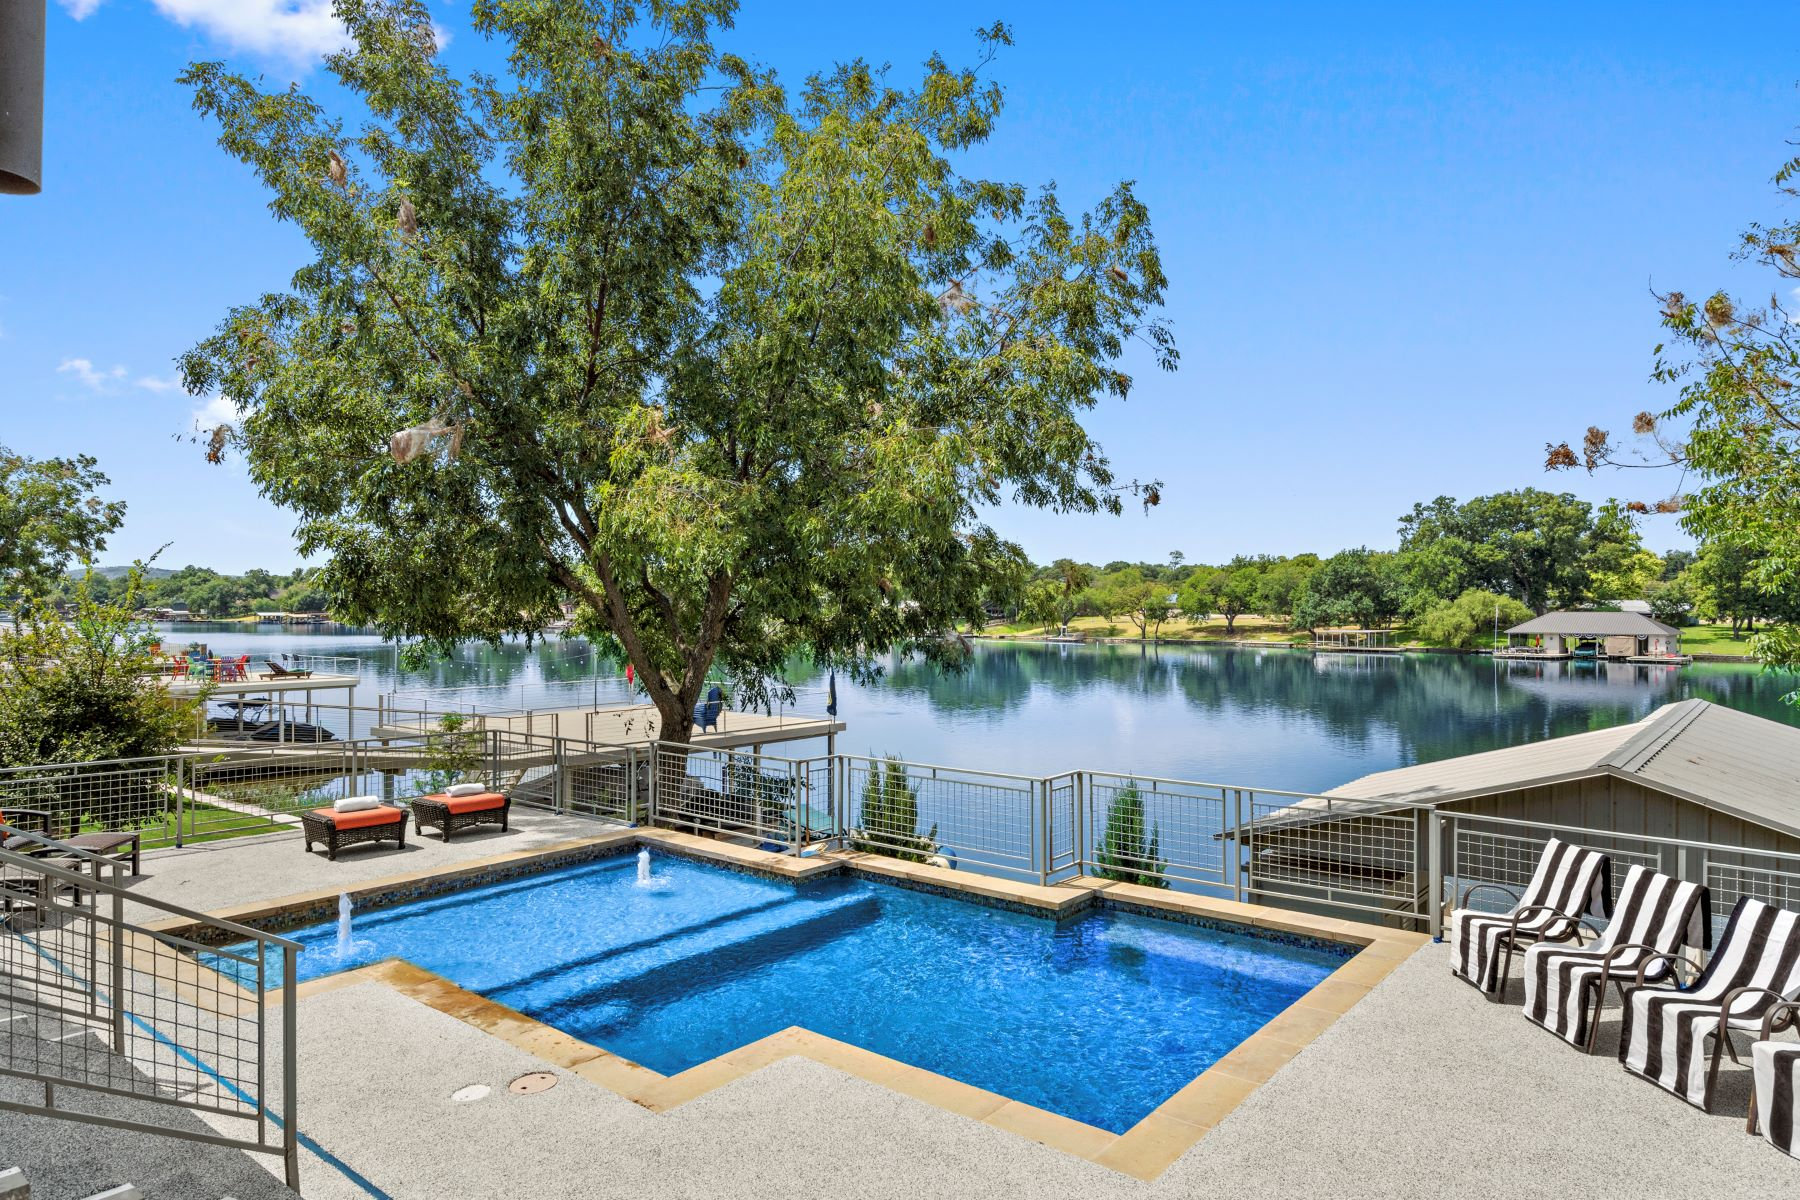 Single Family Homes for Sale at Stylish Custom Built Lake House 206 Hannahs Way Burnet, Texas 78611 United States